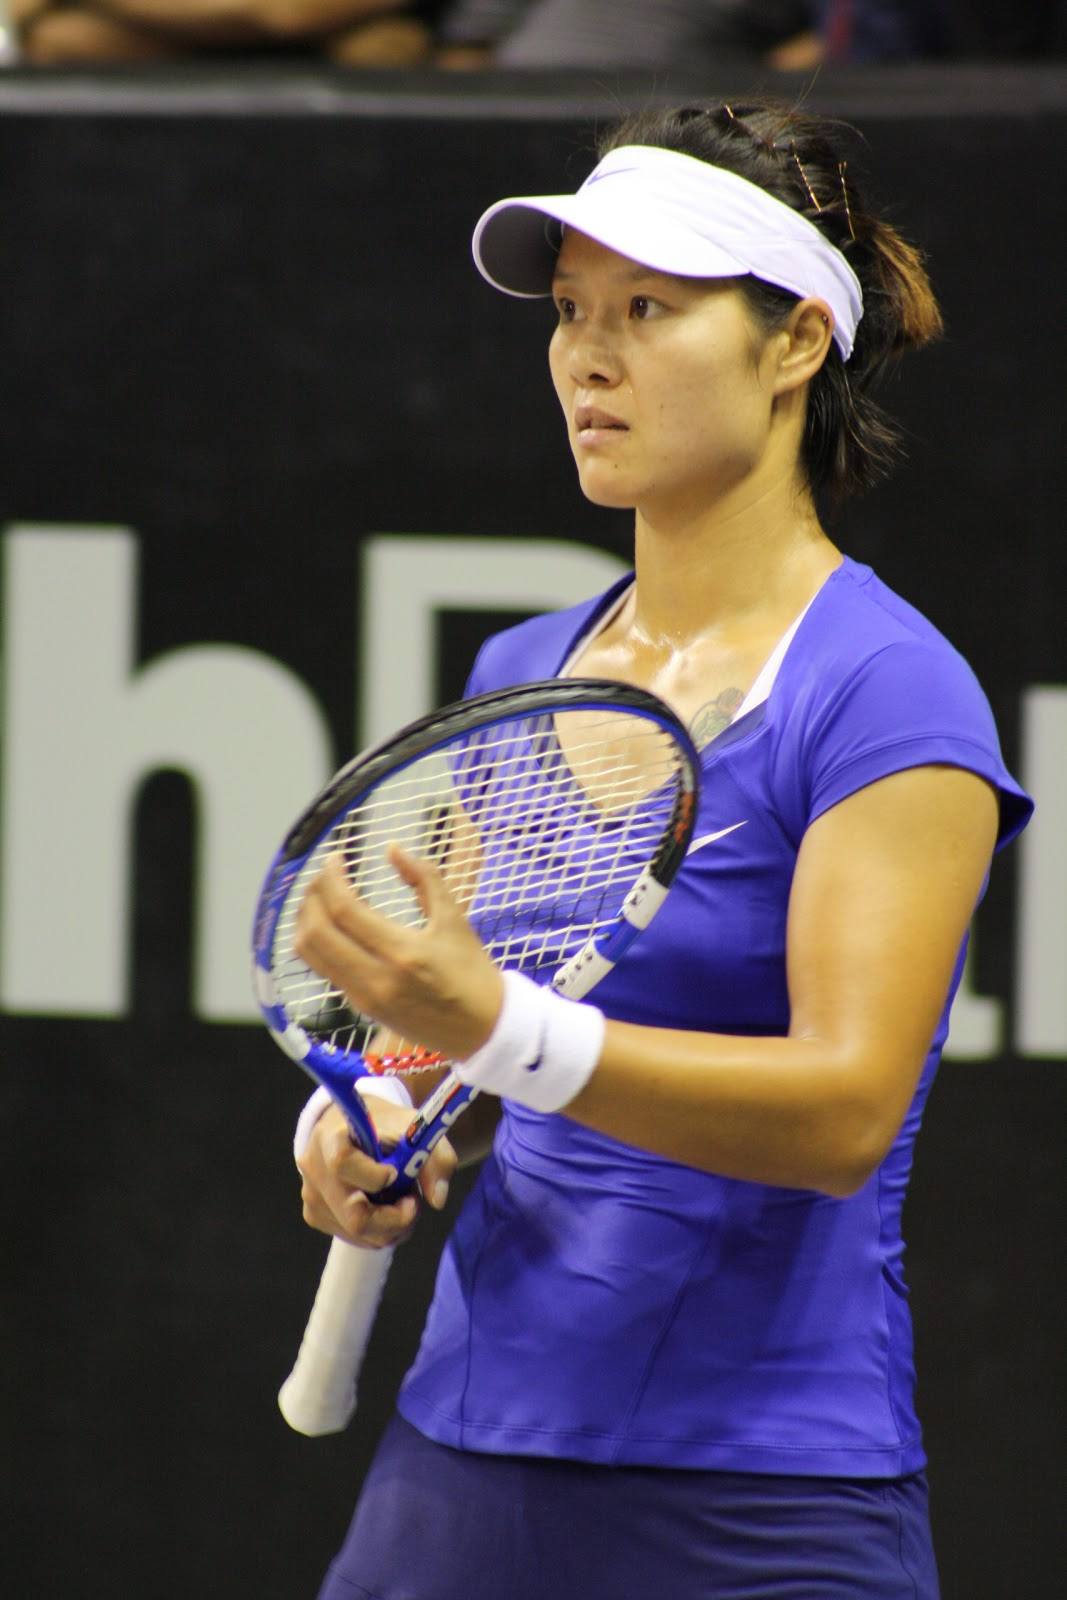 Li Na (seen here in Bali, November 2010) made a historical run in 2011 ...